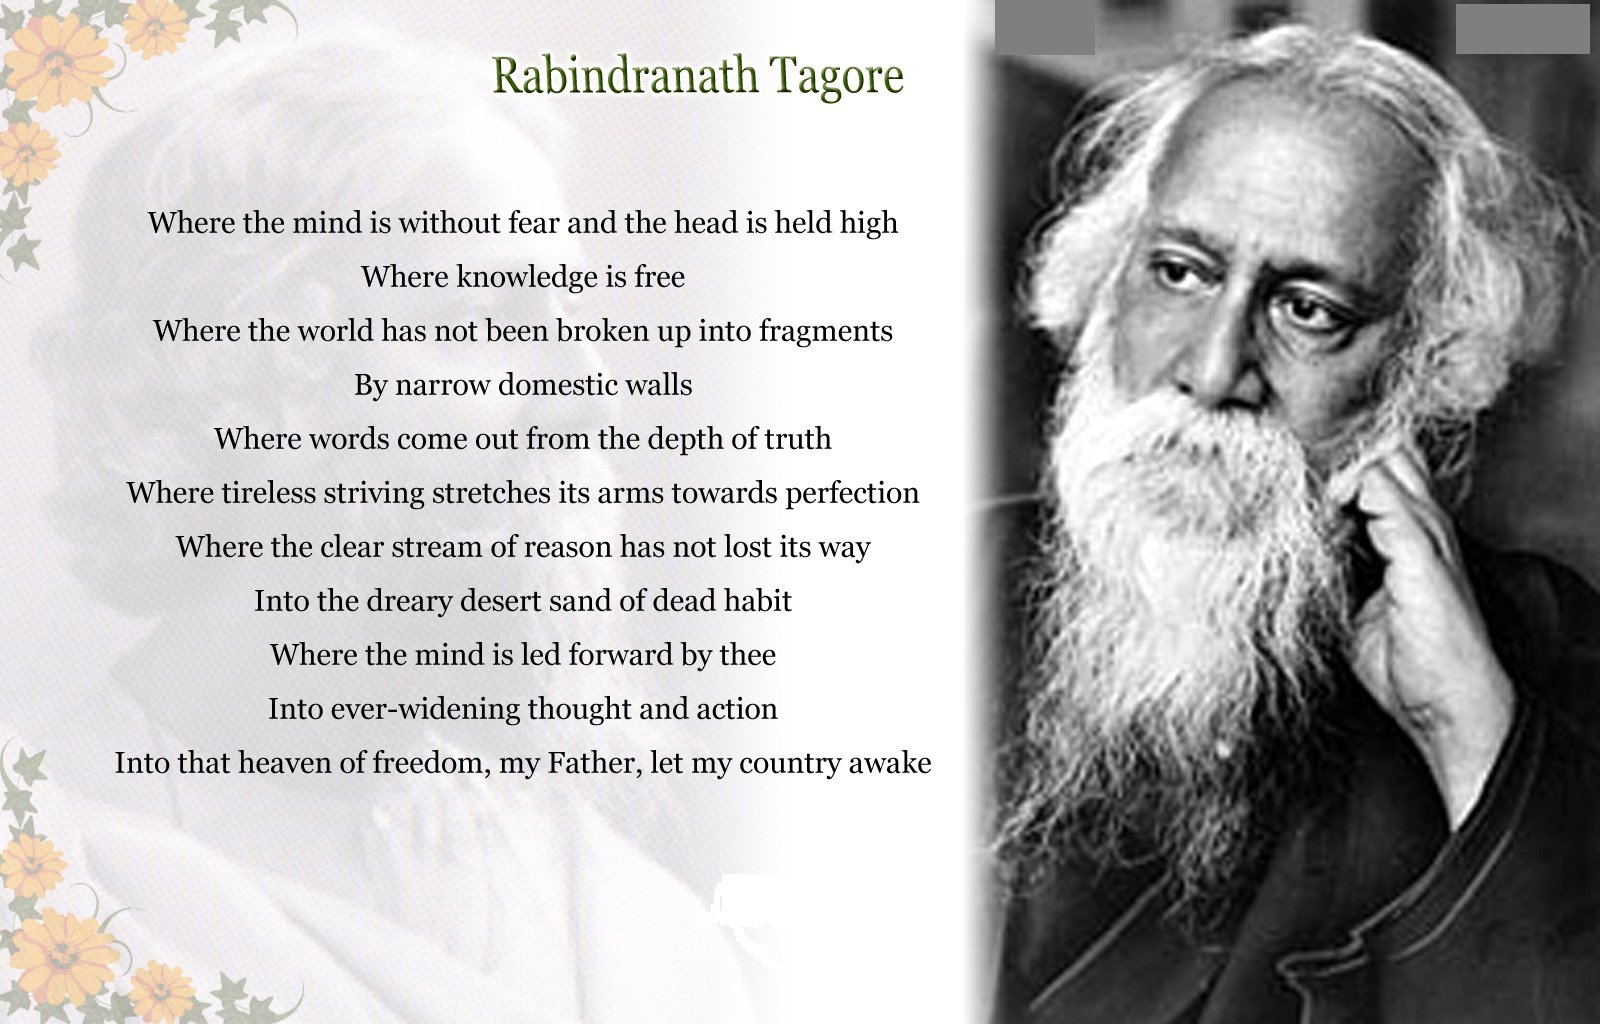 List of works by Rabindranath Tagore